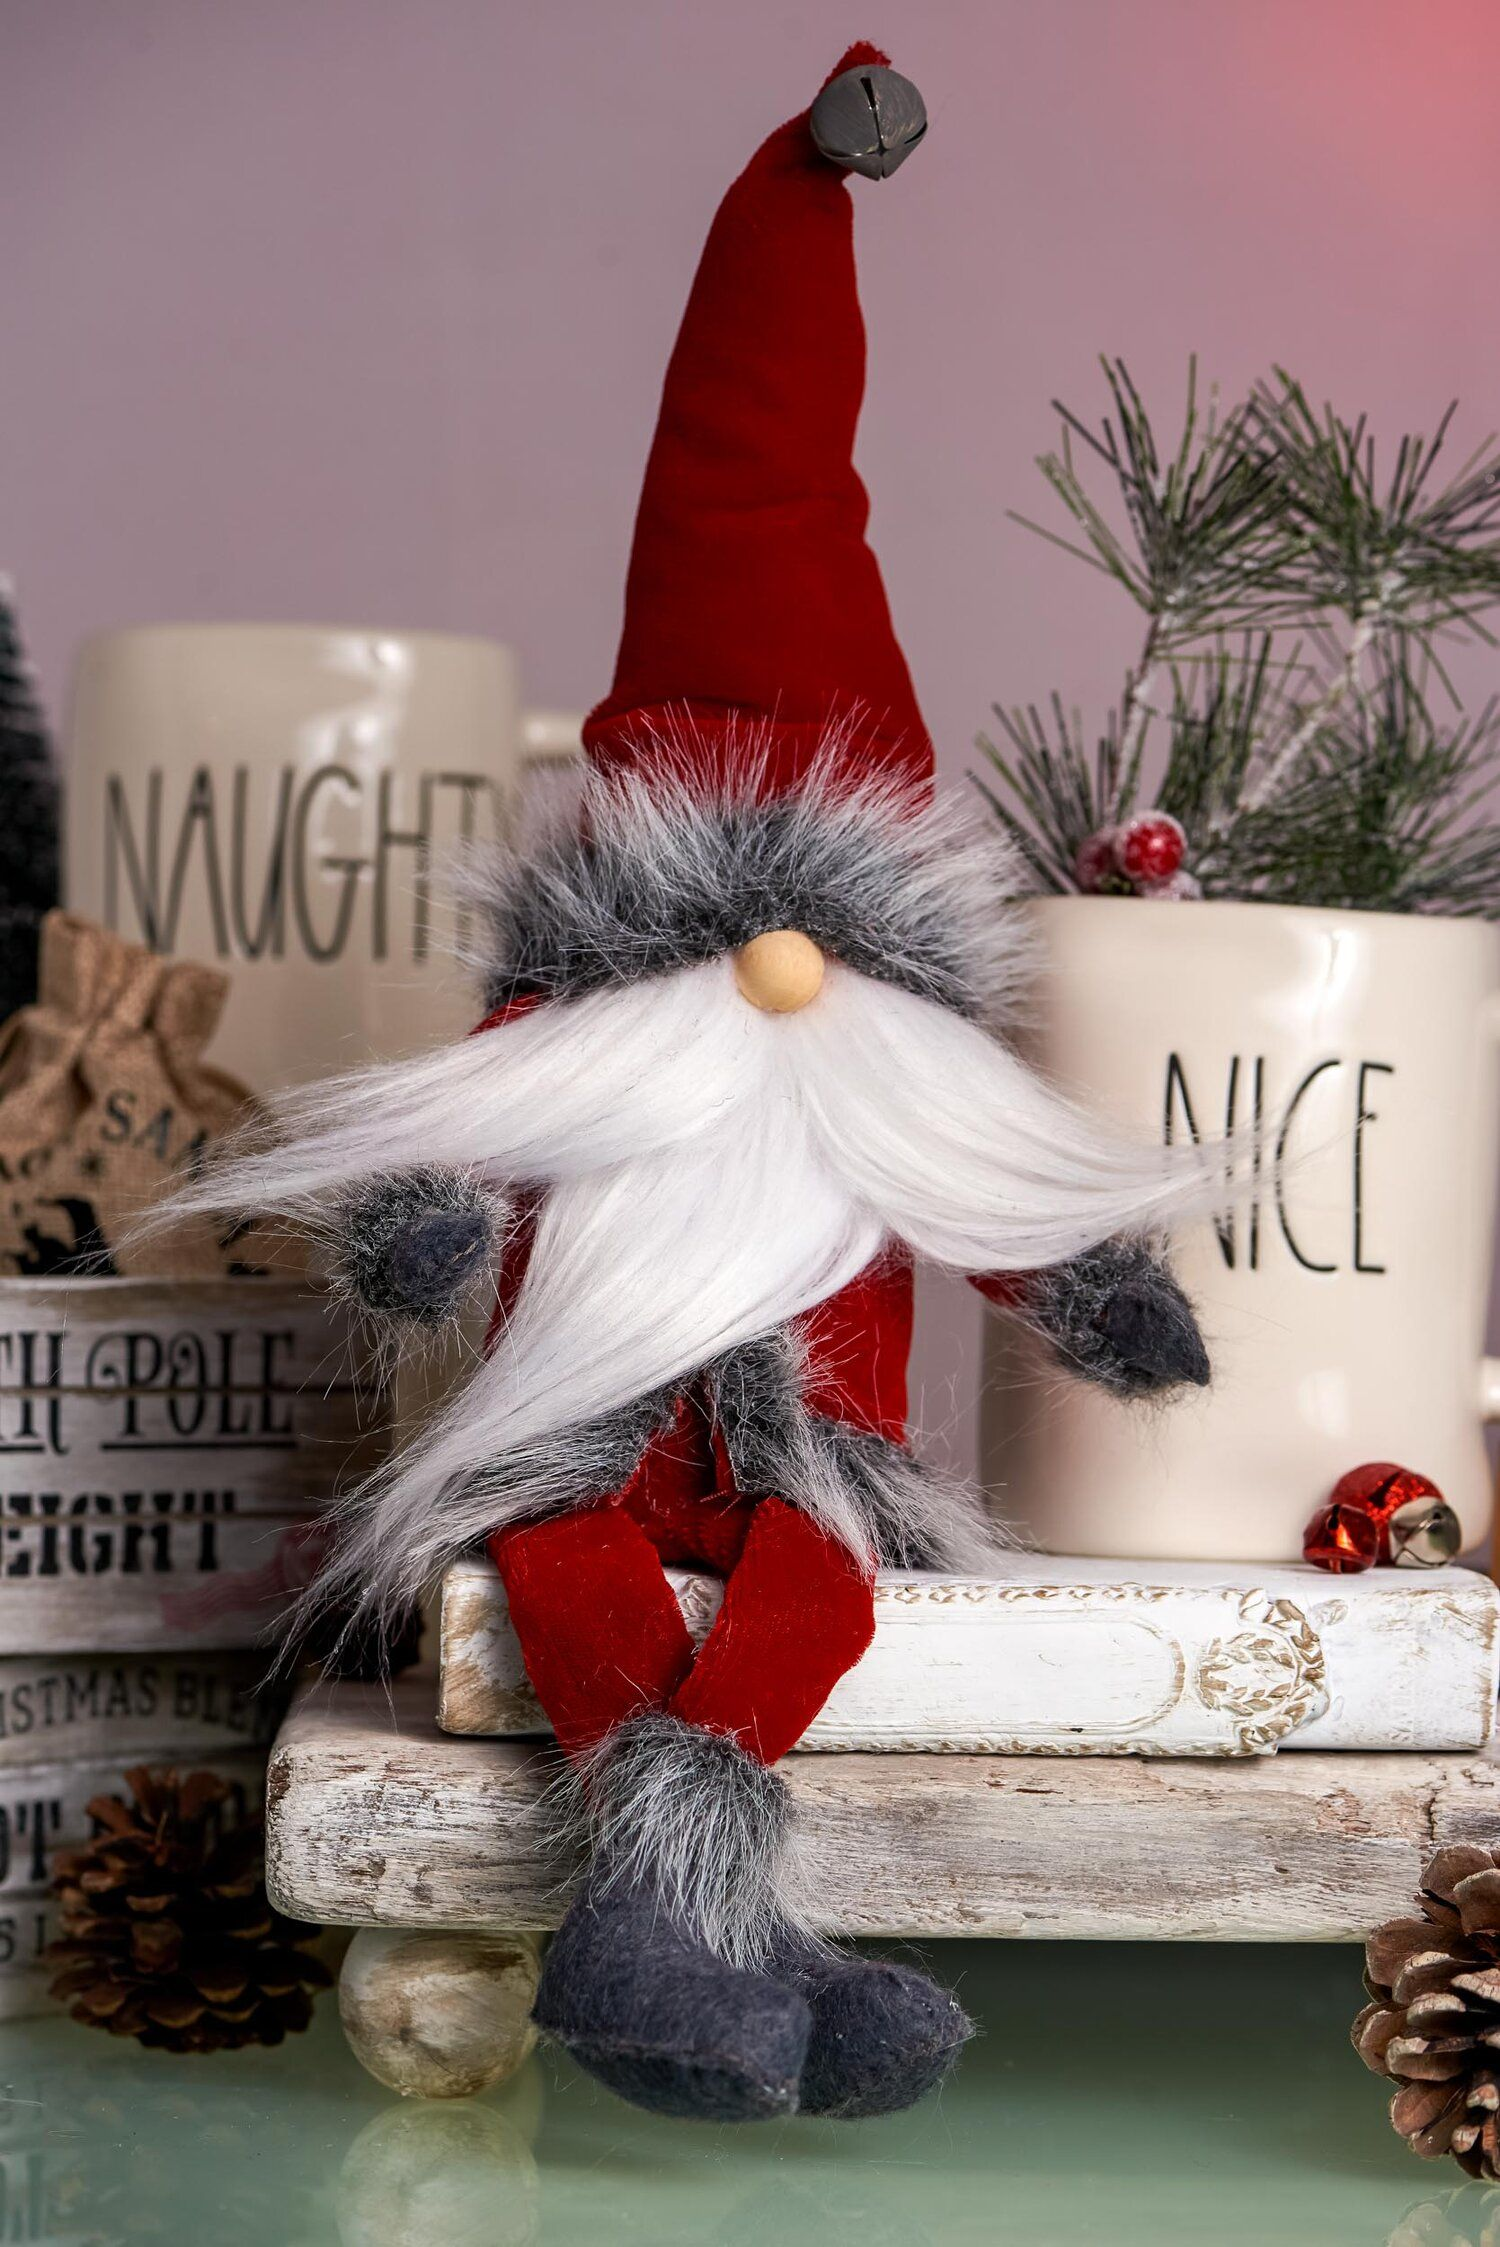 Christmas Christmas Crafts For Gifts Christmas Crafts Gnome Gift